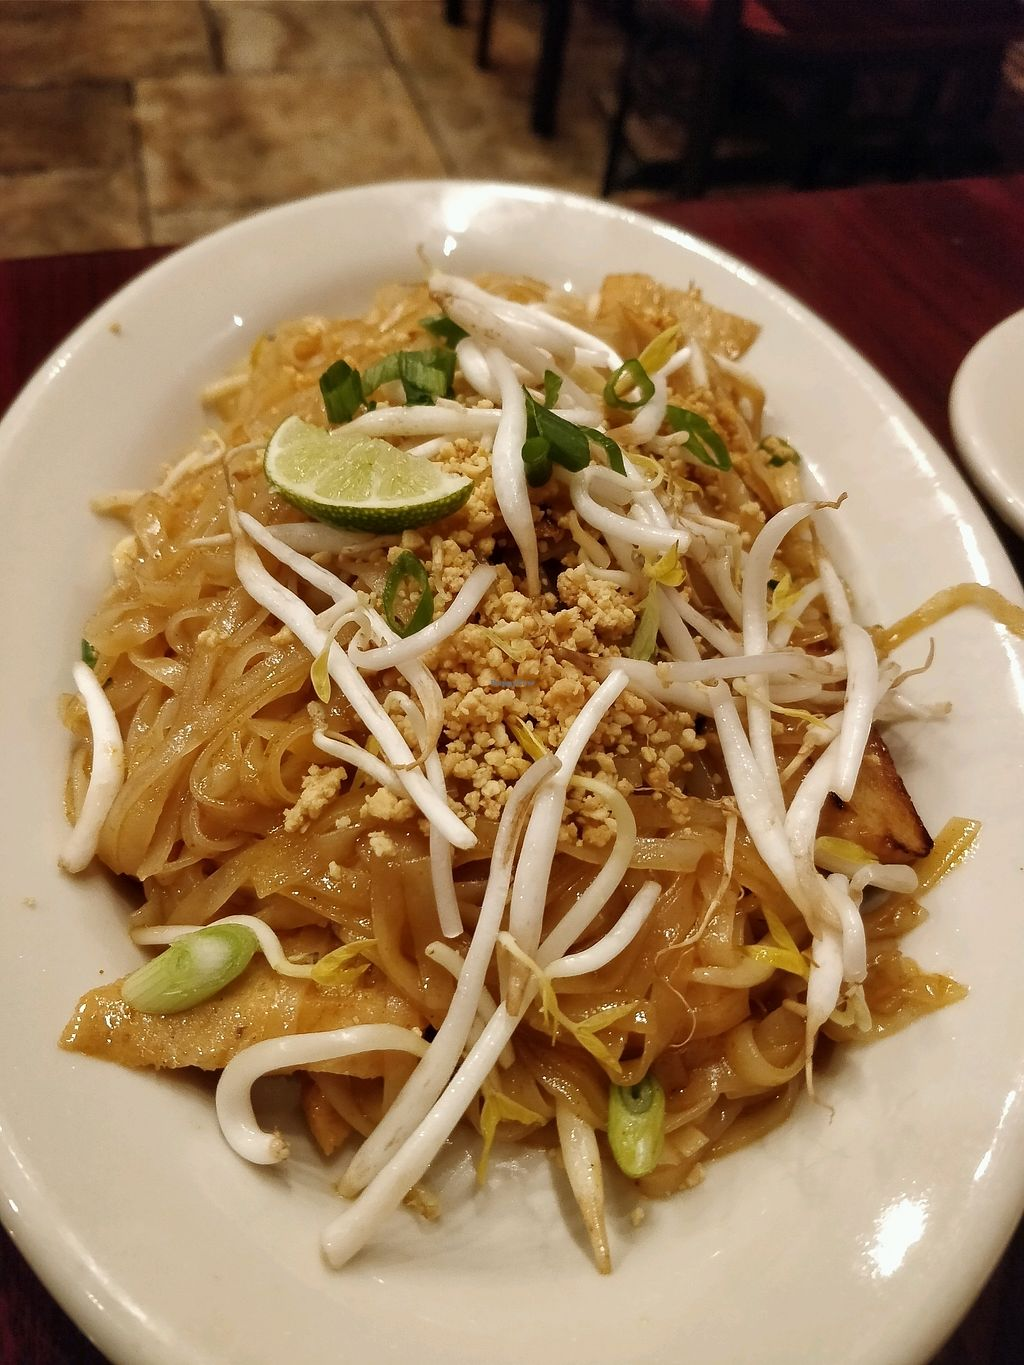 """Photo of Thai Vegan - Nob Hill  by <a href=""""/members/profile/Chrisarnold"""">Chrisarnold</a> <br/>pad thai <br/> February 12, 2018  - <a href='/contact/abuse/image/35625/358210'>Report</a>"""